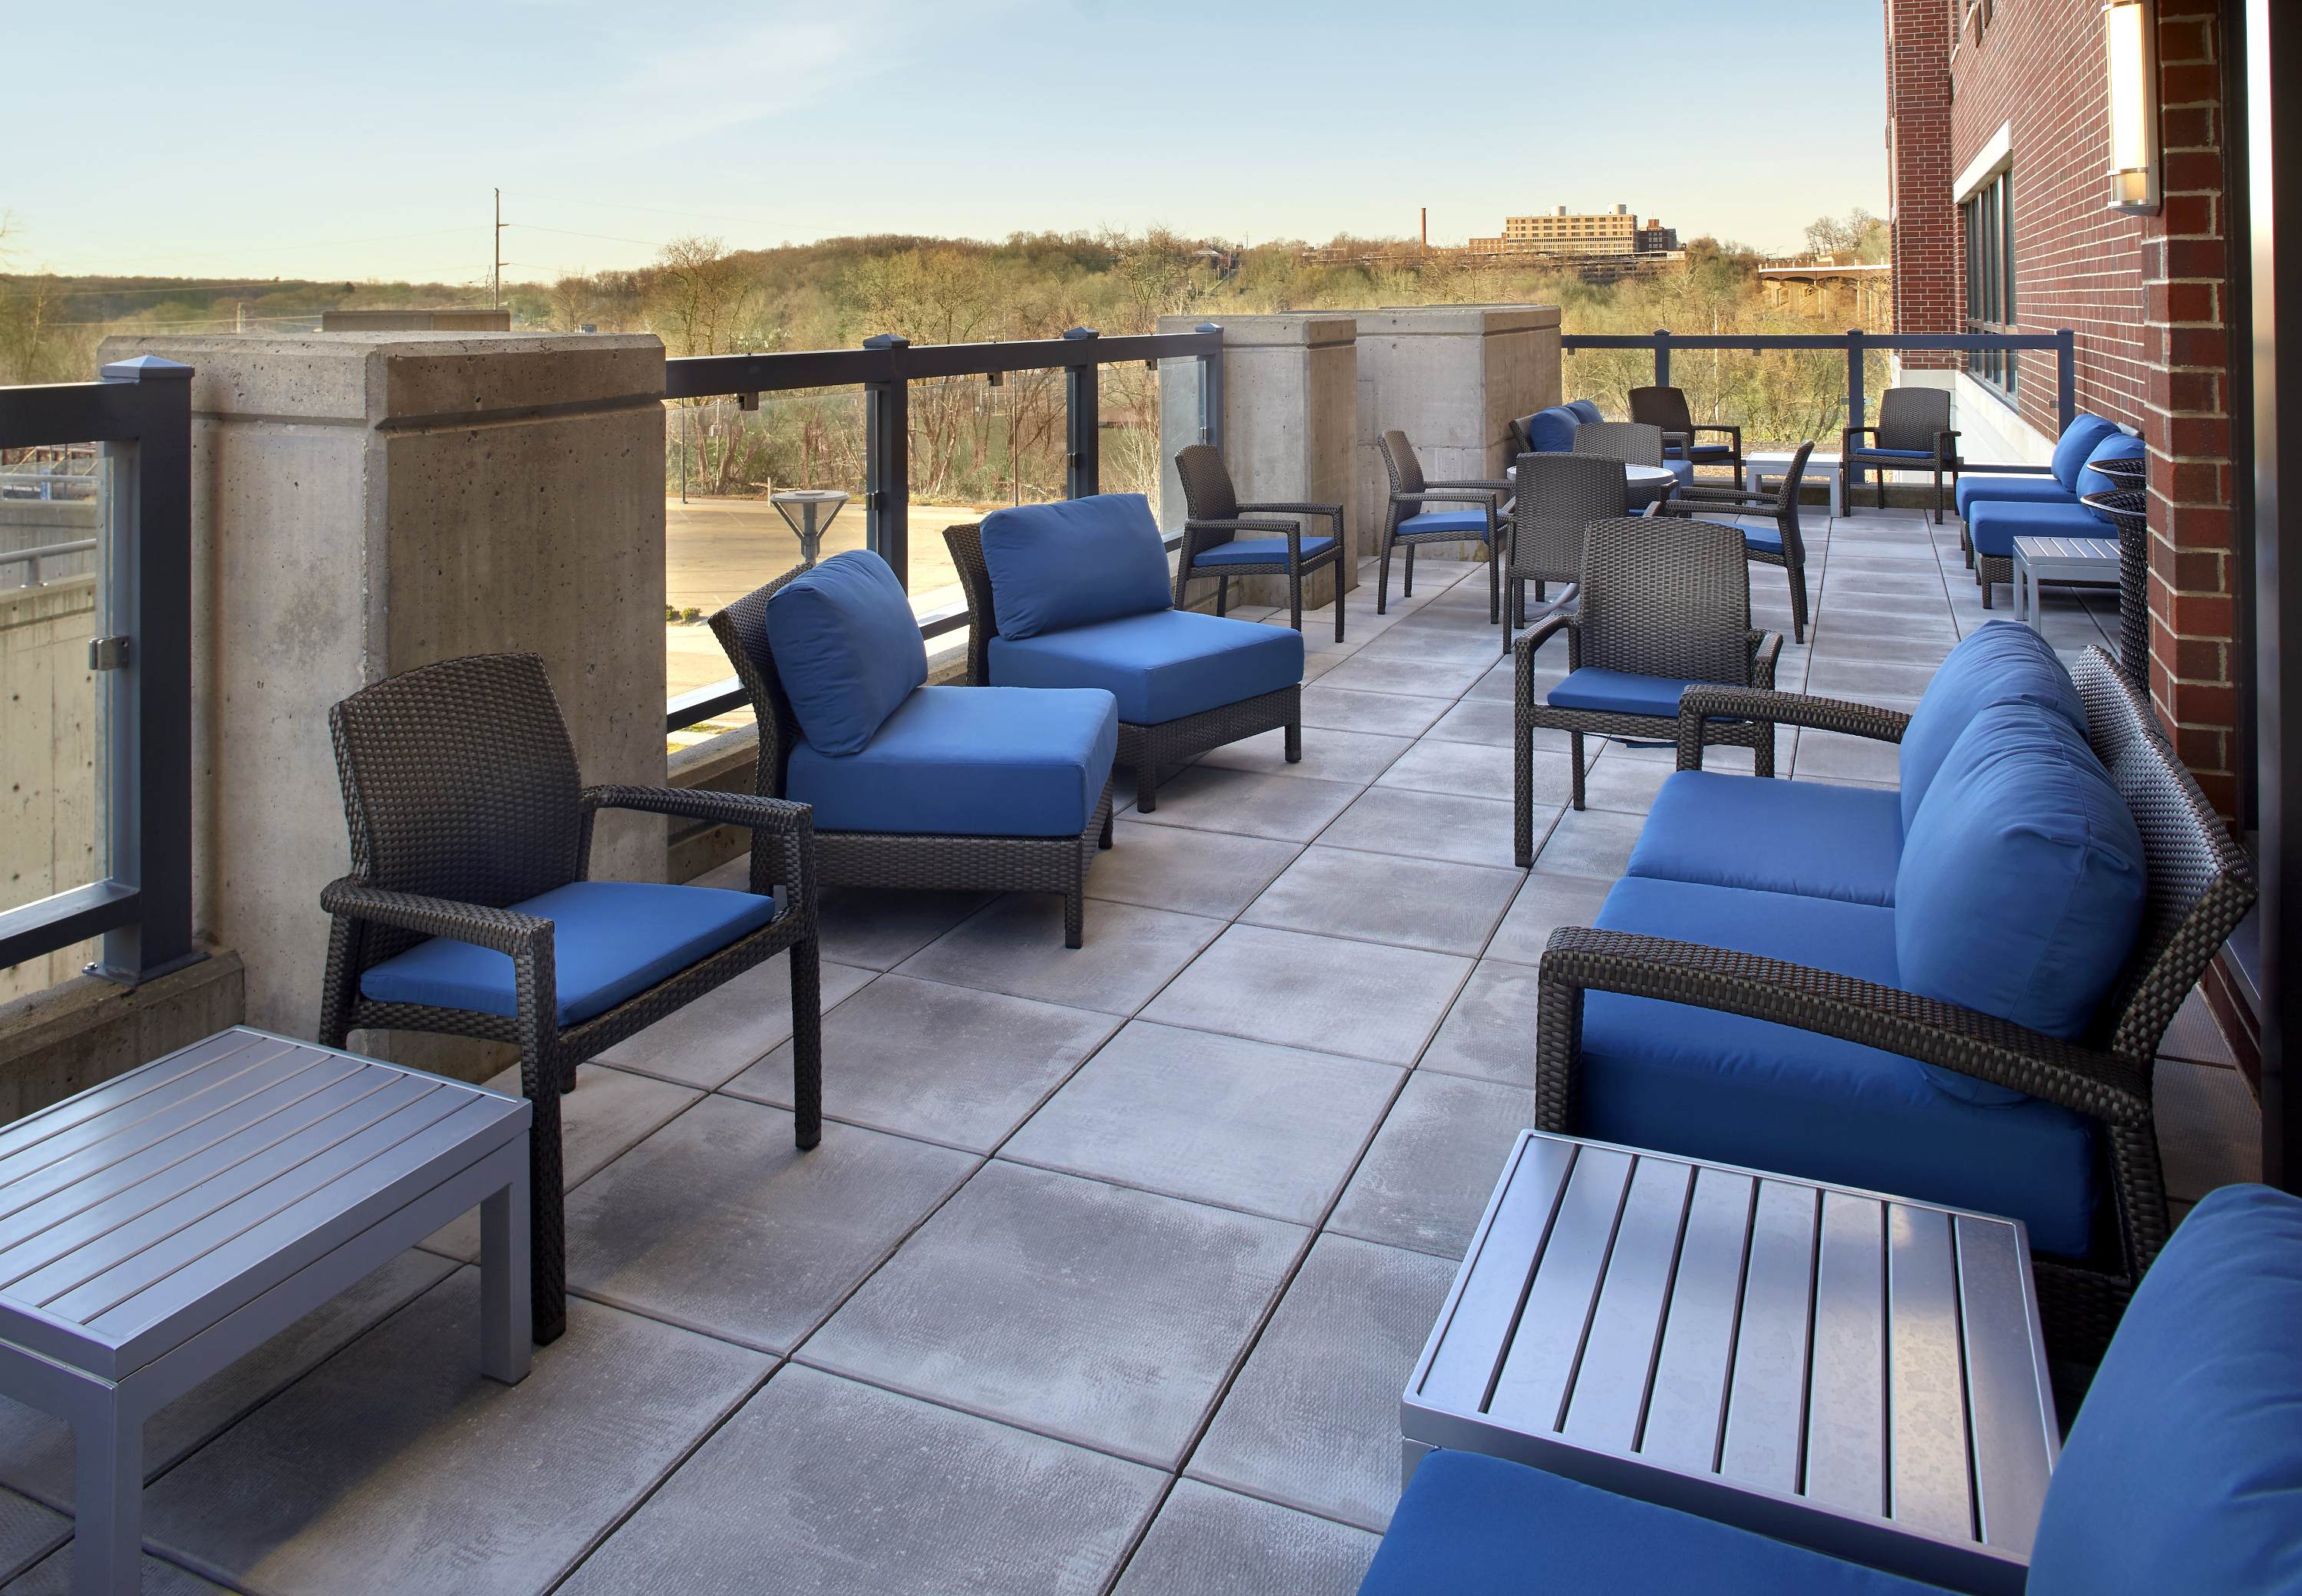 Courtyard by Marriott Akron Downtown image 10